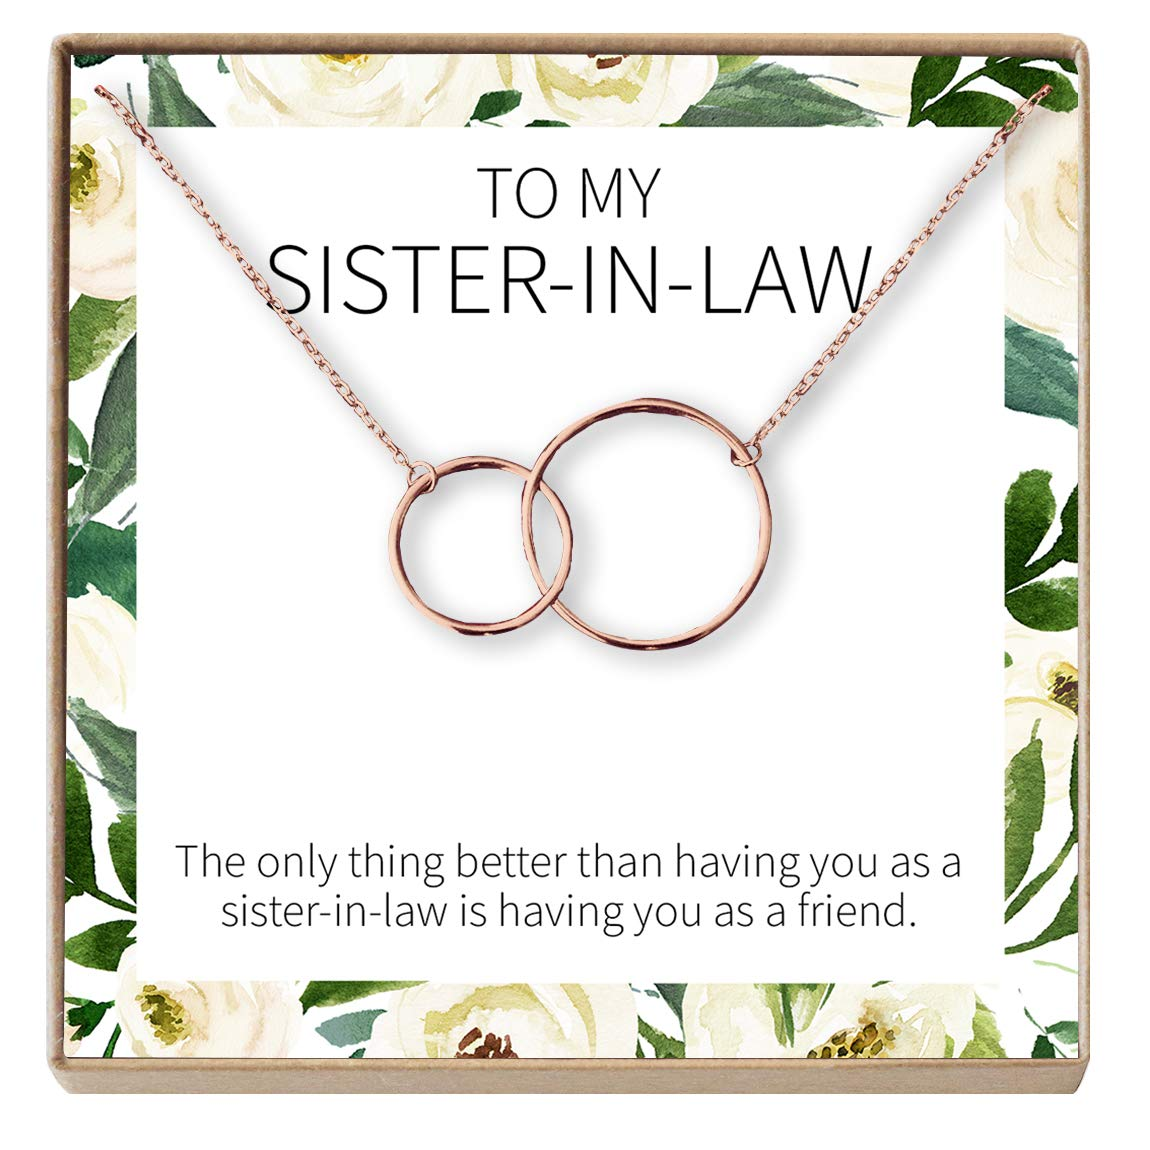 Jewelry from Sister Dear Ava Sister-in-Law Gift Necklace Wedding Gift 2 Interlocking Circles